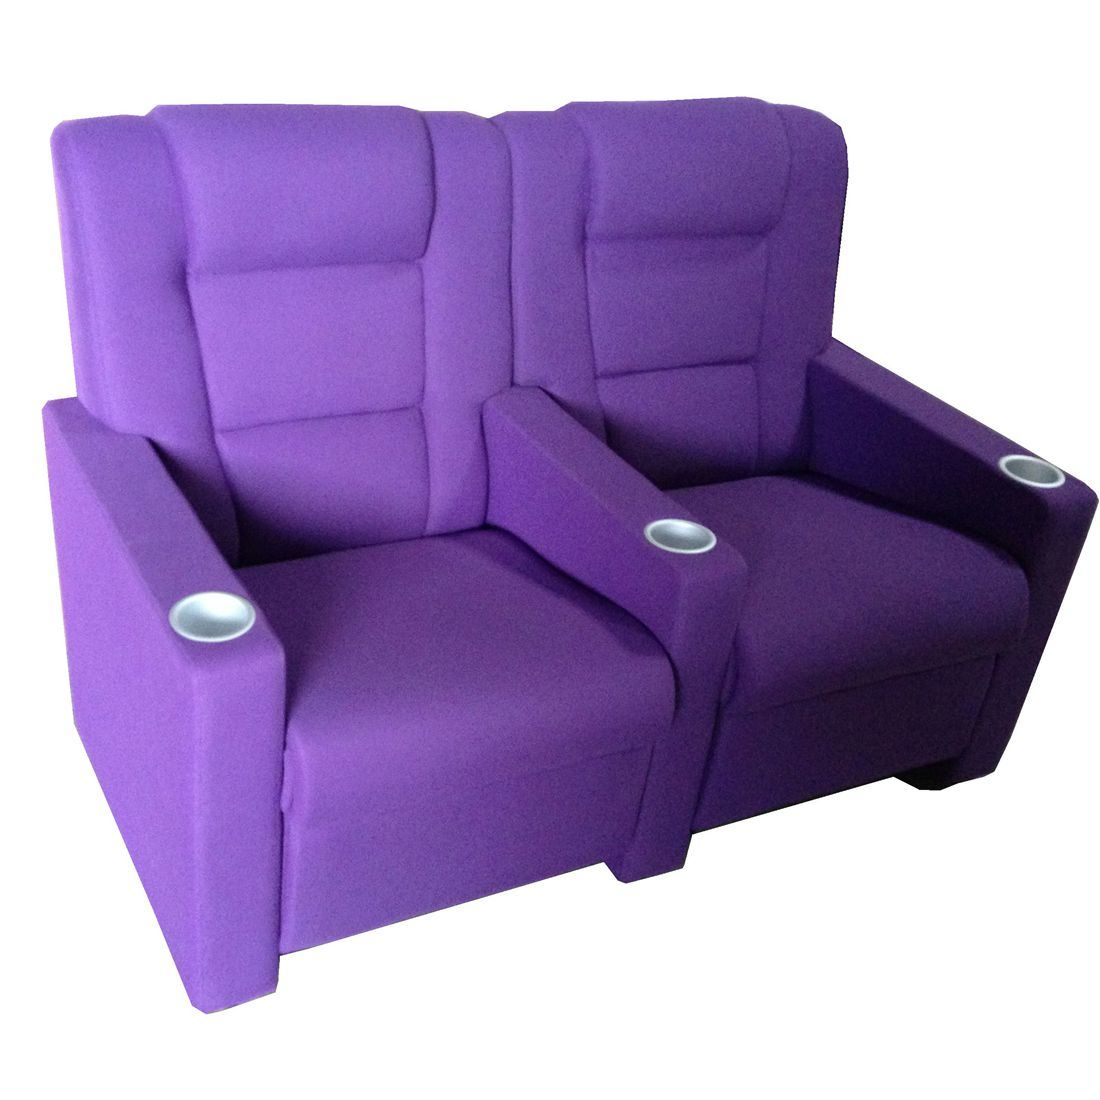 Cinema Seat Movie Theater Sofa VIP Imax Chair (VIM 2)